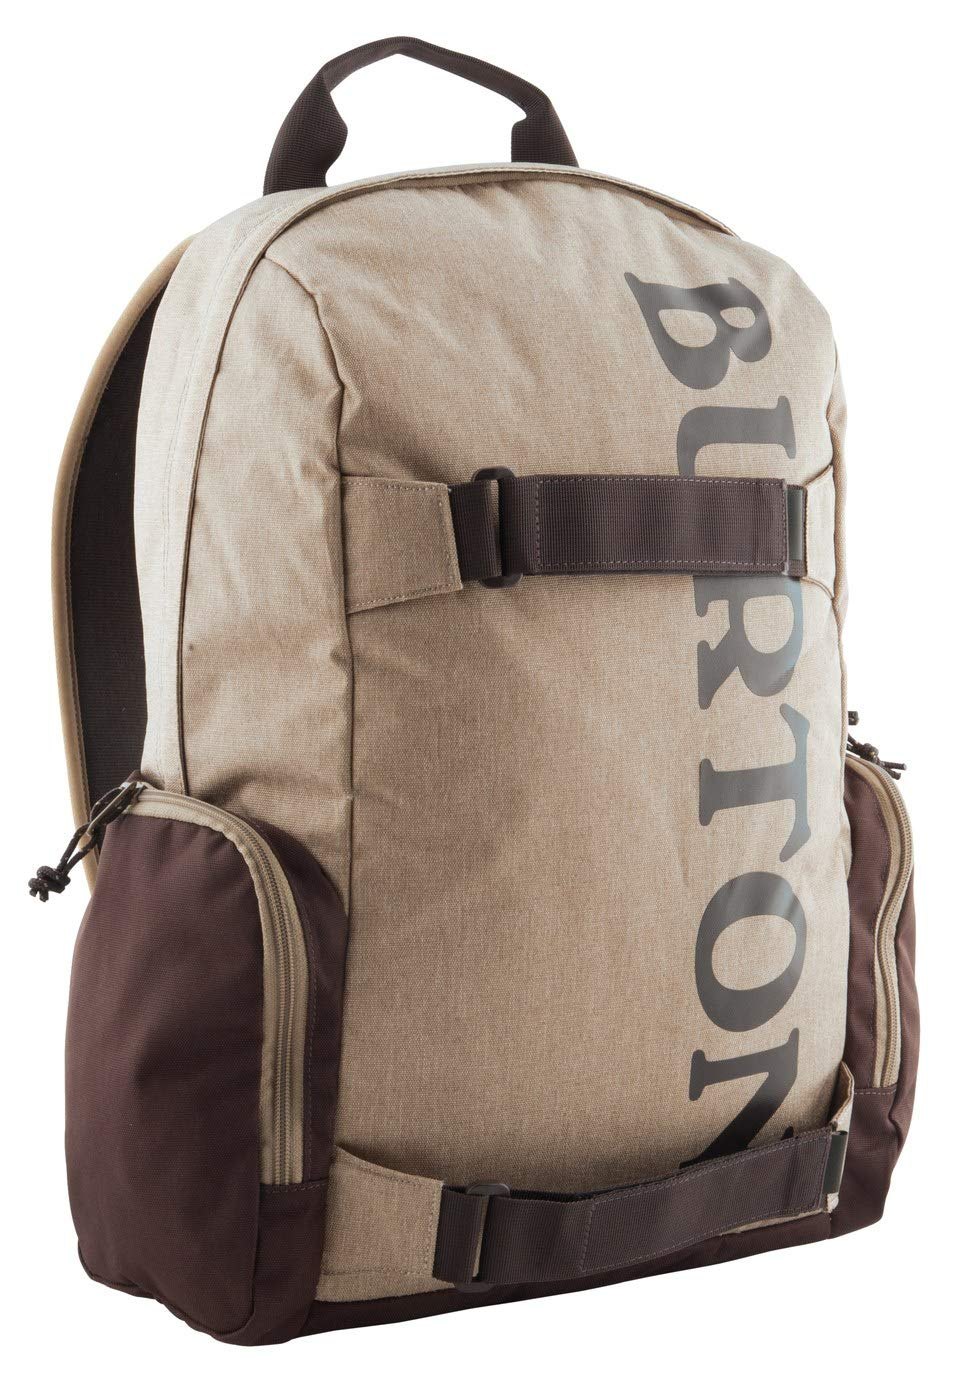 Burton Emphasis Pack Kelp Heather Sac-á -Dos Mixte Adulte BURA3|#Burton 17382104259